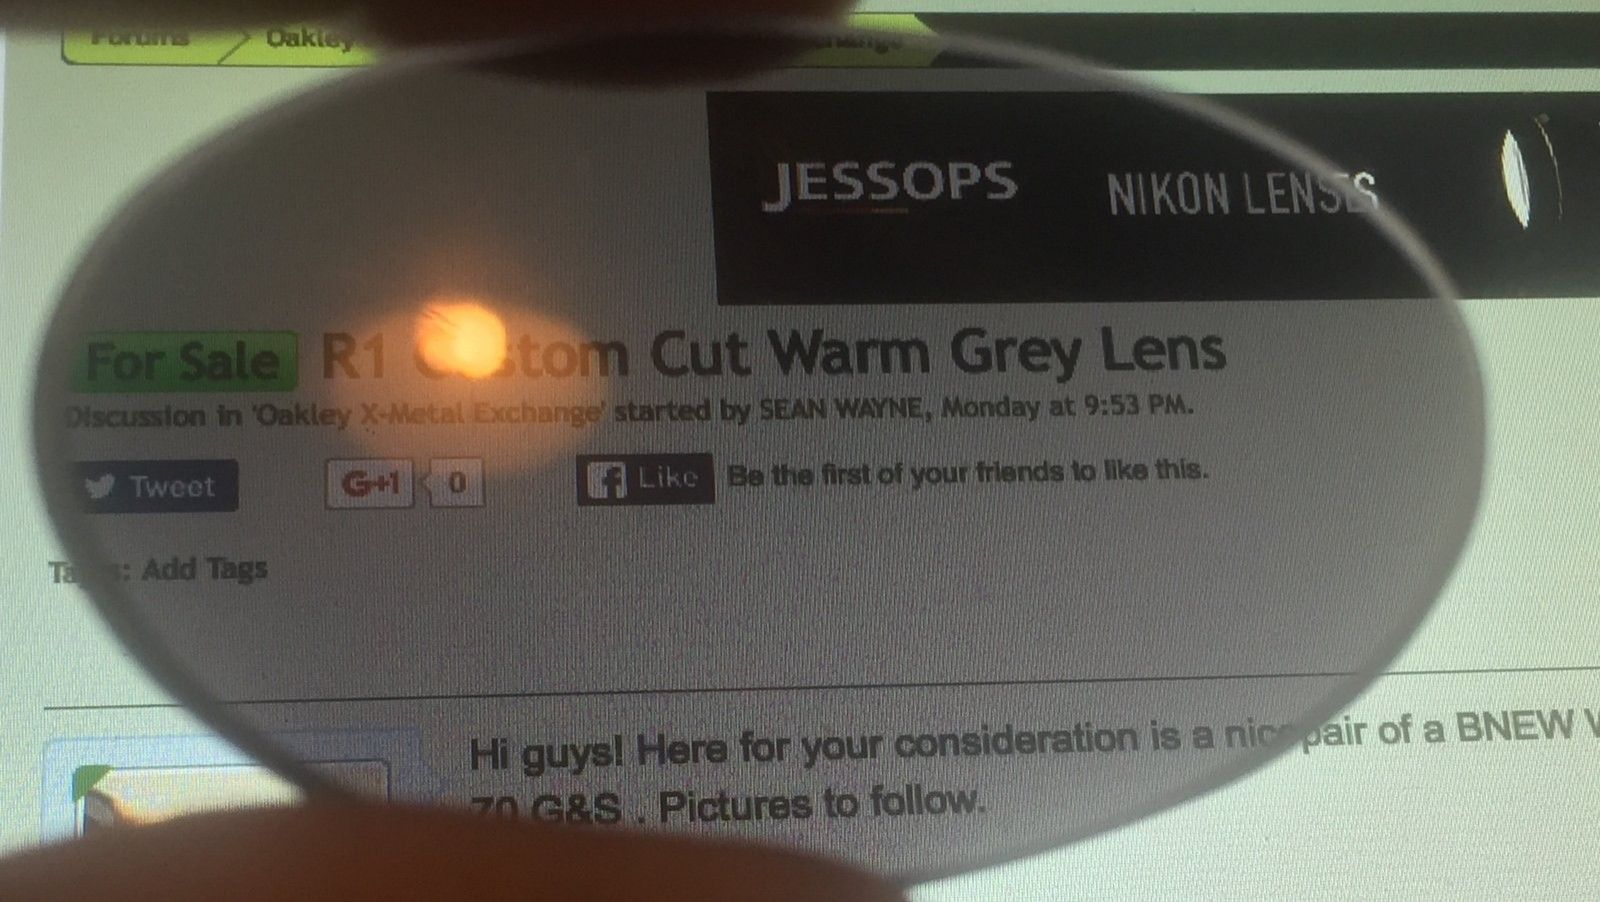 60usd R1 Custom Cut Warm Grey Lens BNEW! - image.jpeg